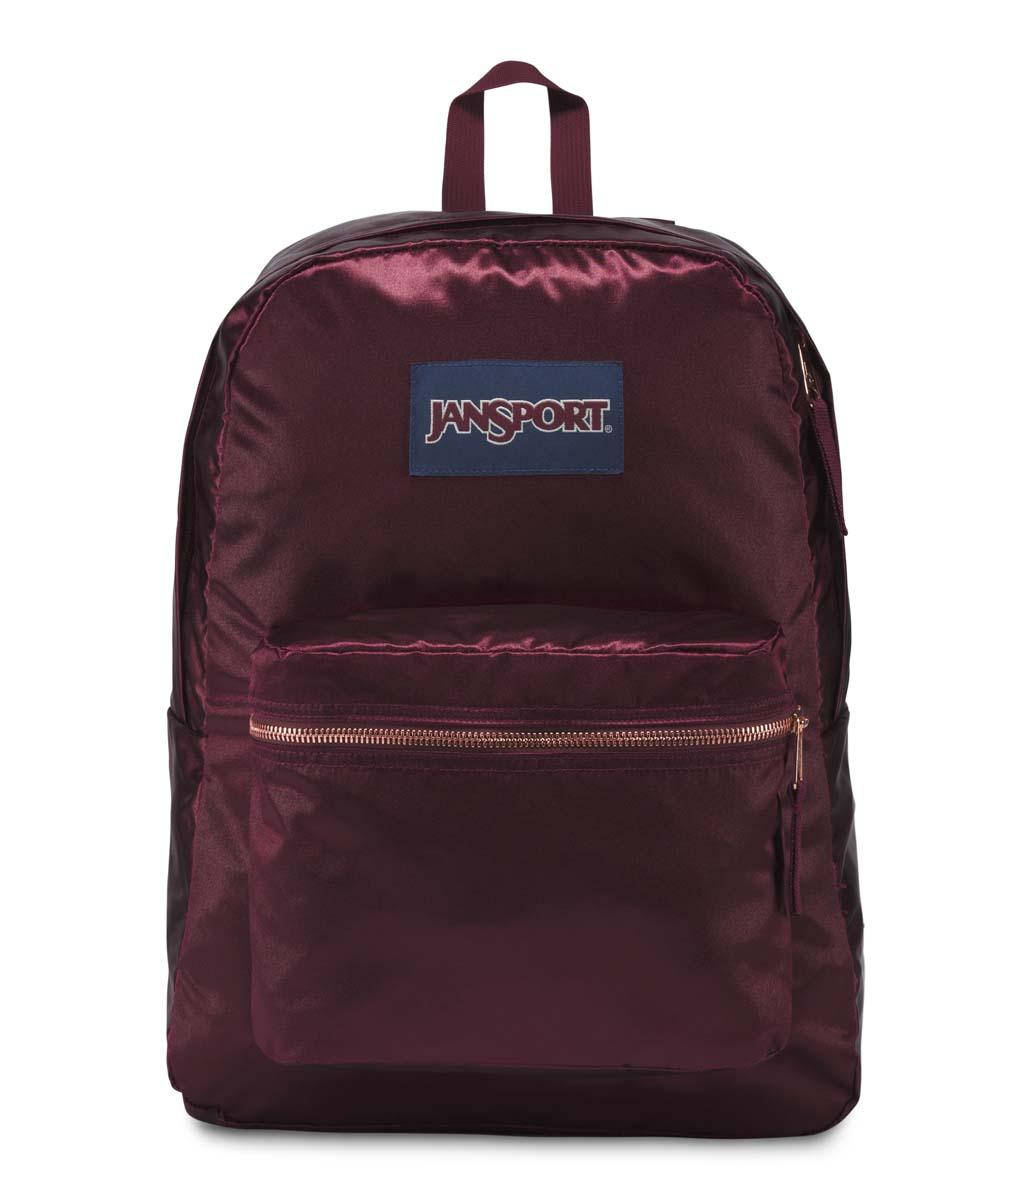 Kelebihan Tas Ransel Jansport Right Pack Original Viking Red Terkini Obat Stroke Buchang Naoxintong High Stakes Russet Rose Gold